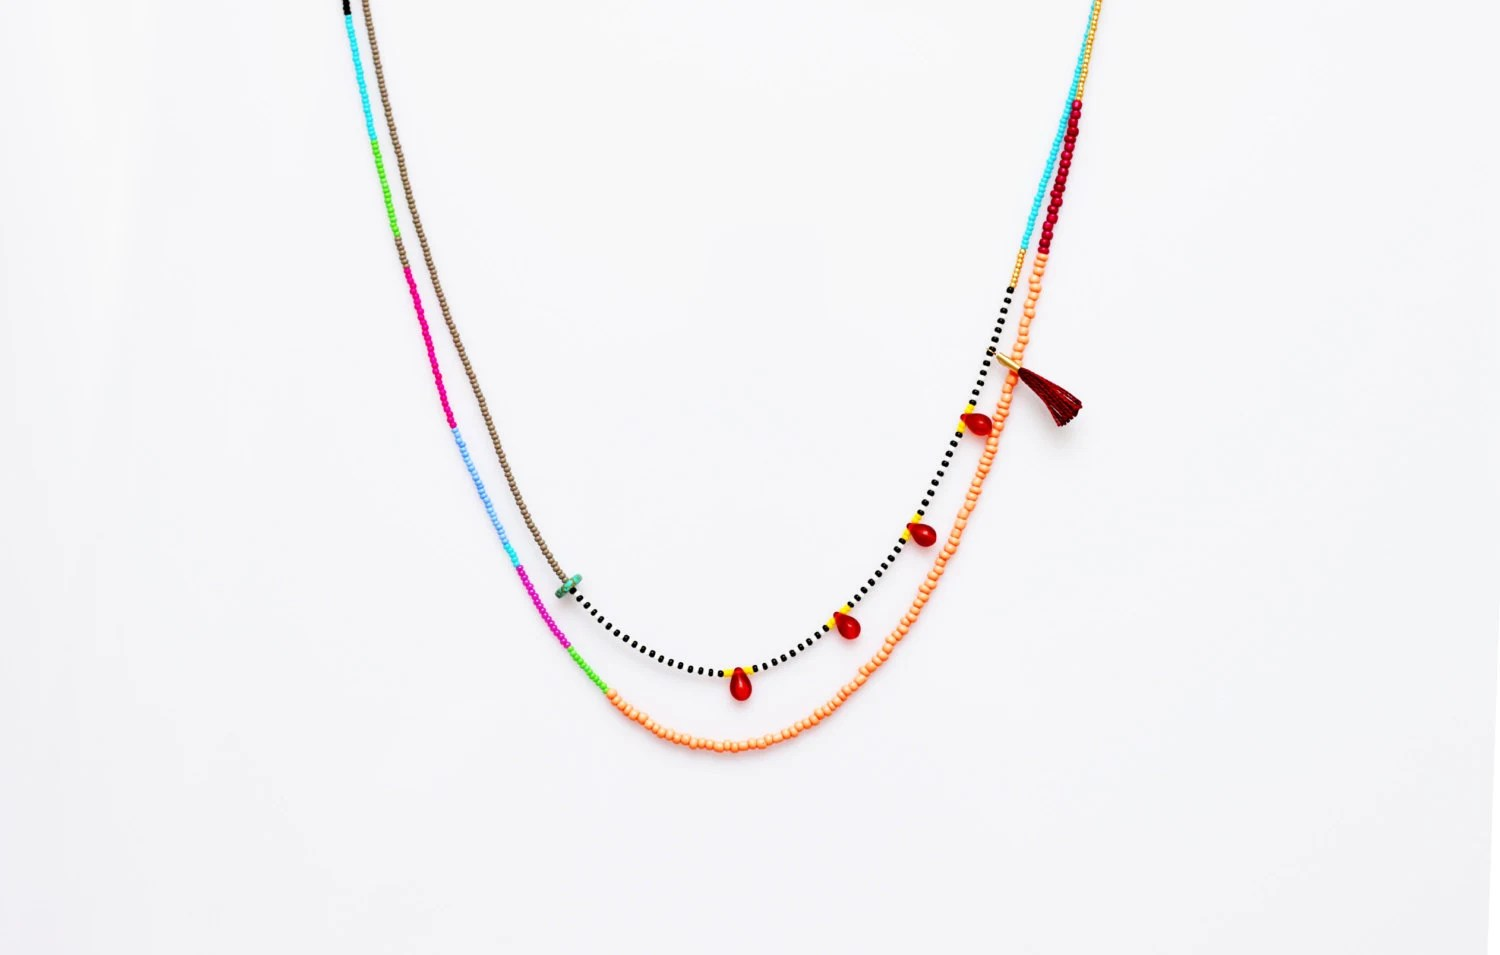 Tribal Seed Bead Necklace Glass Bead Necklace Layered